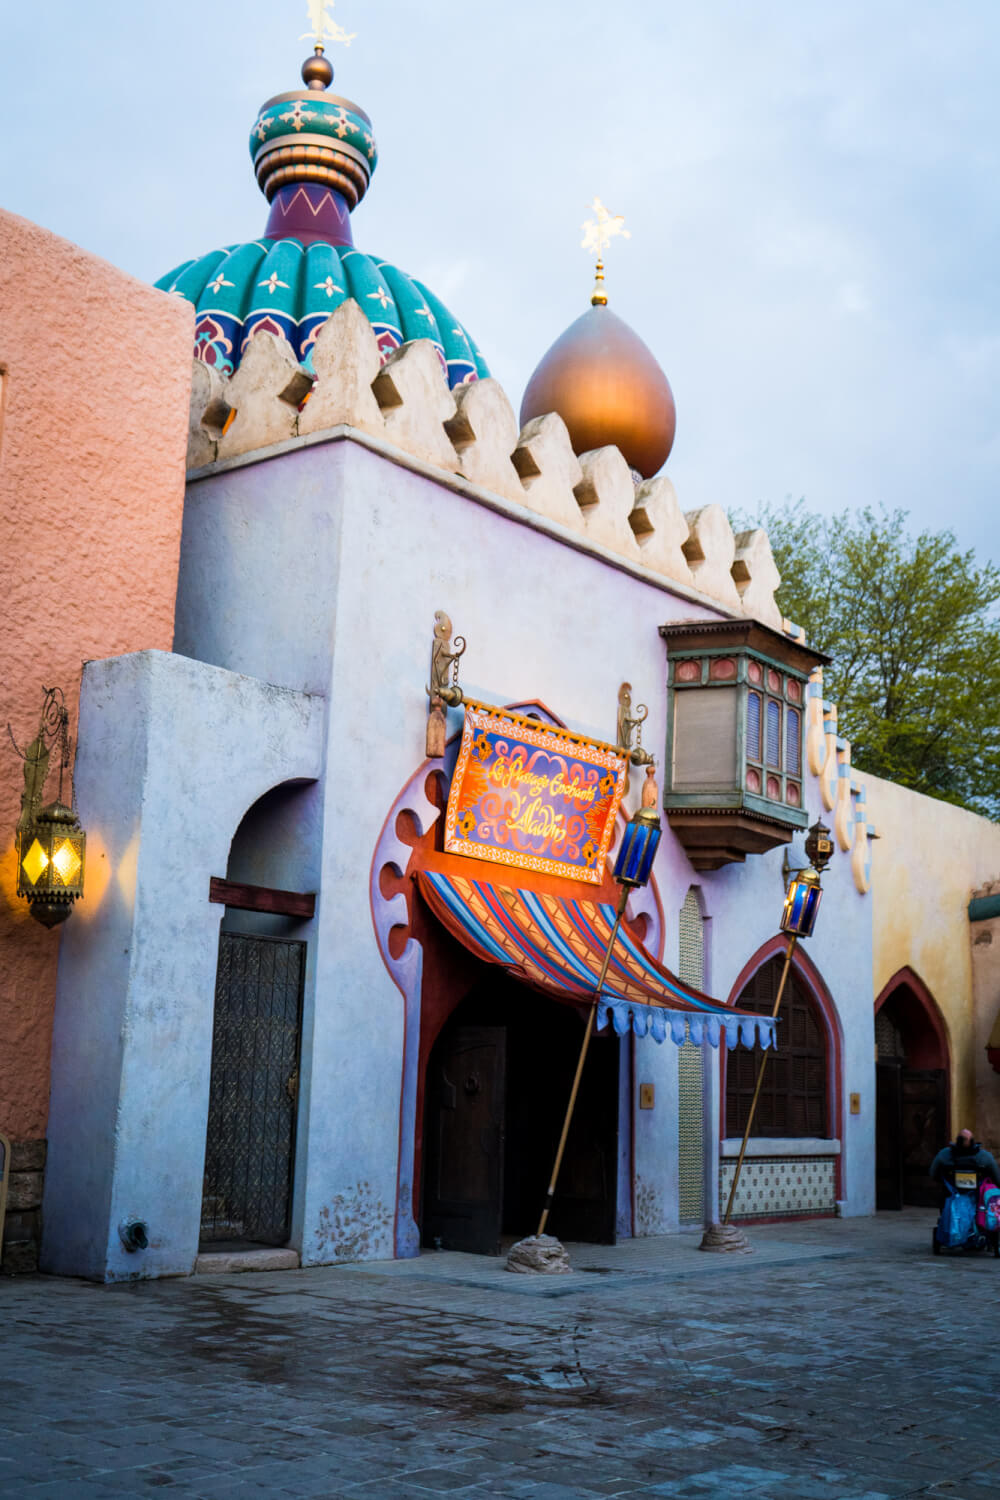 Aladdin's Enchanted Passage at Disneyland Paris